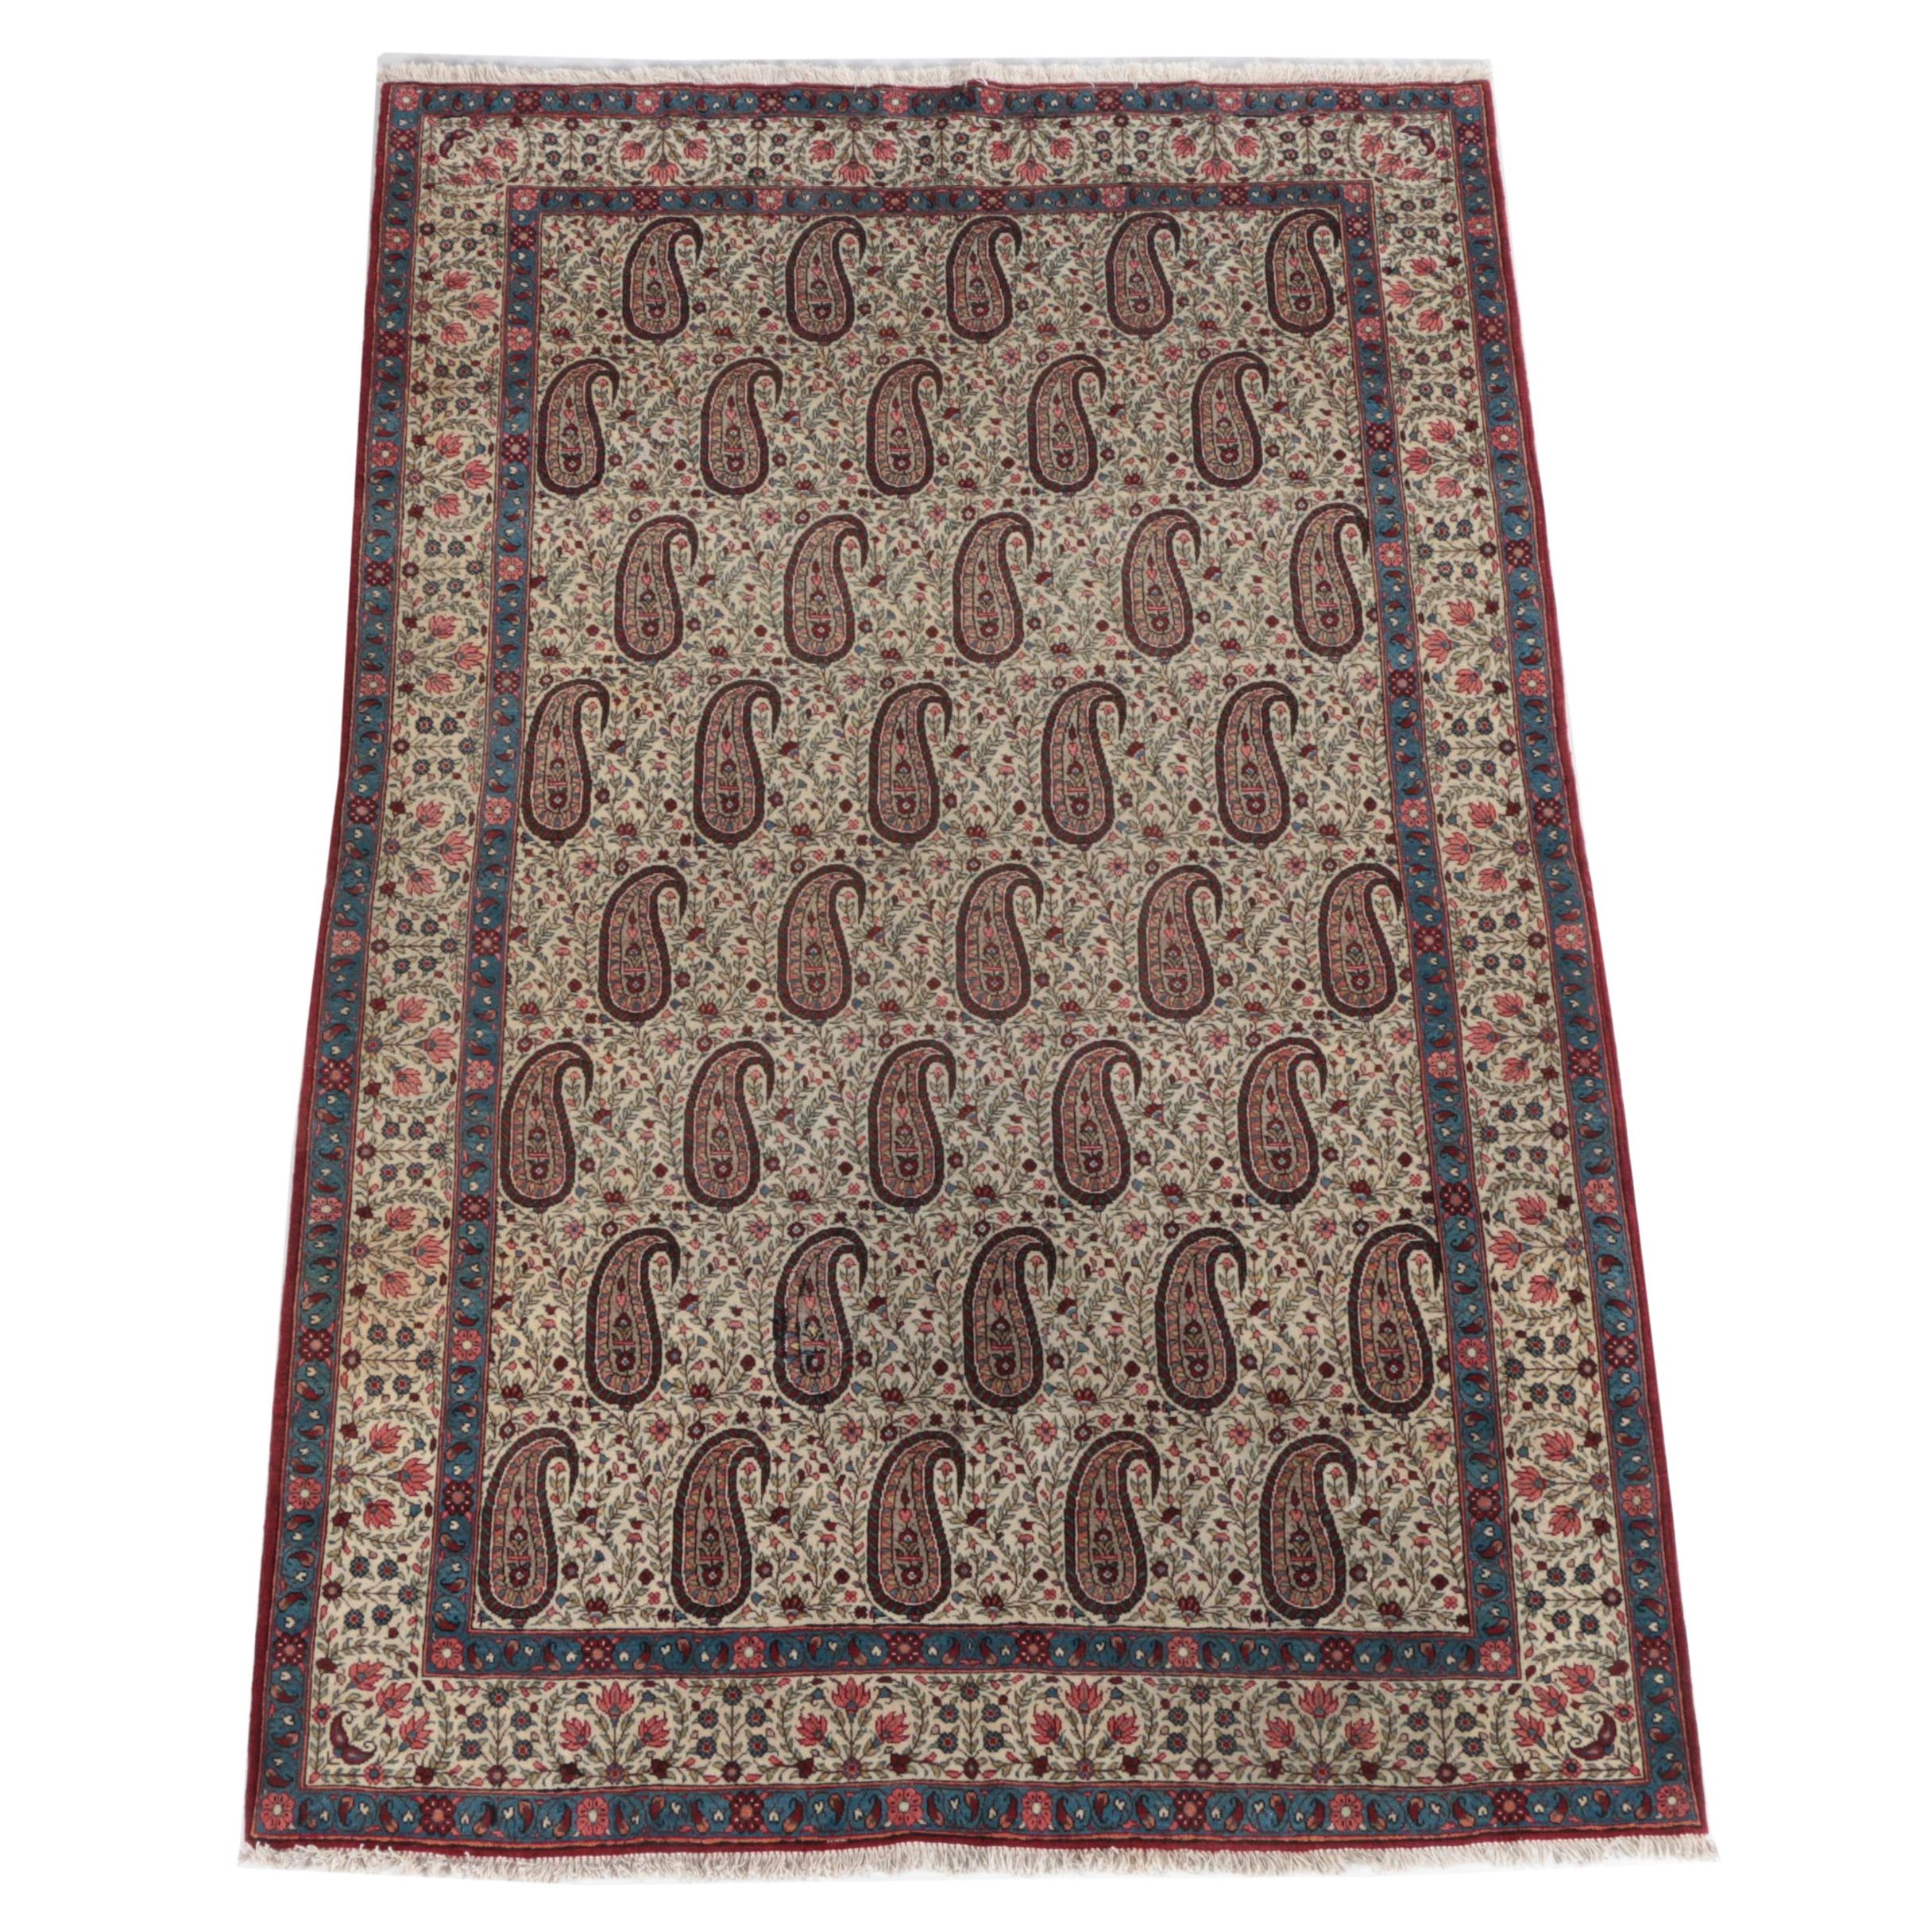 Antique Hand-Knotted Persian Qum Boteh Area Rug